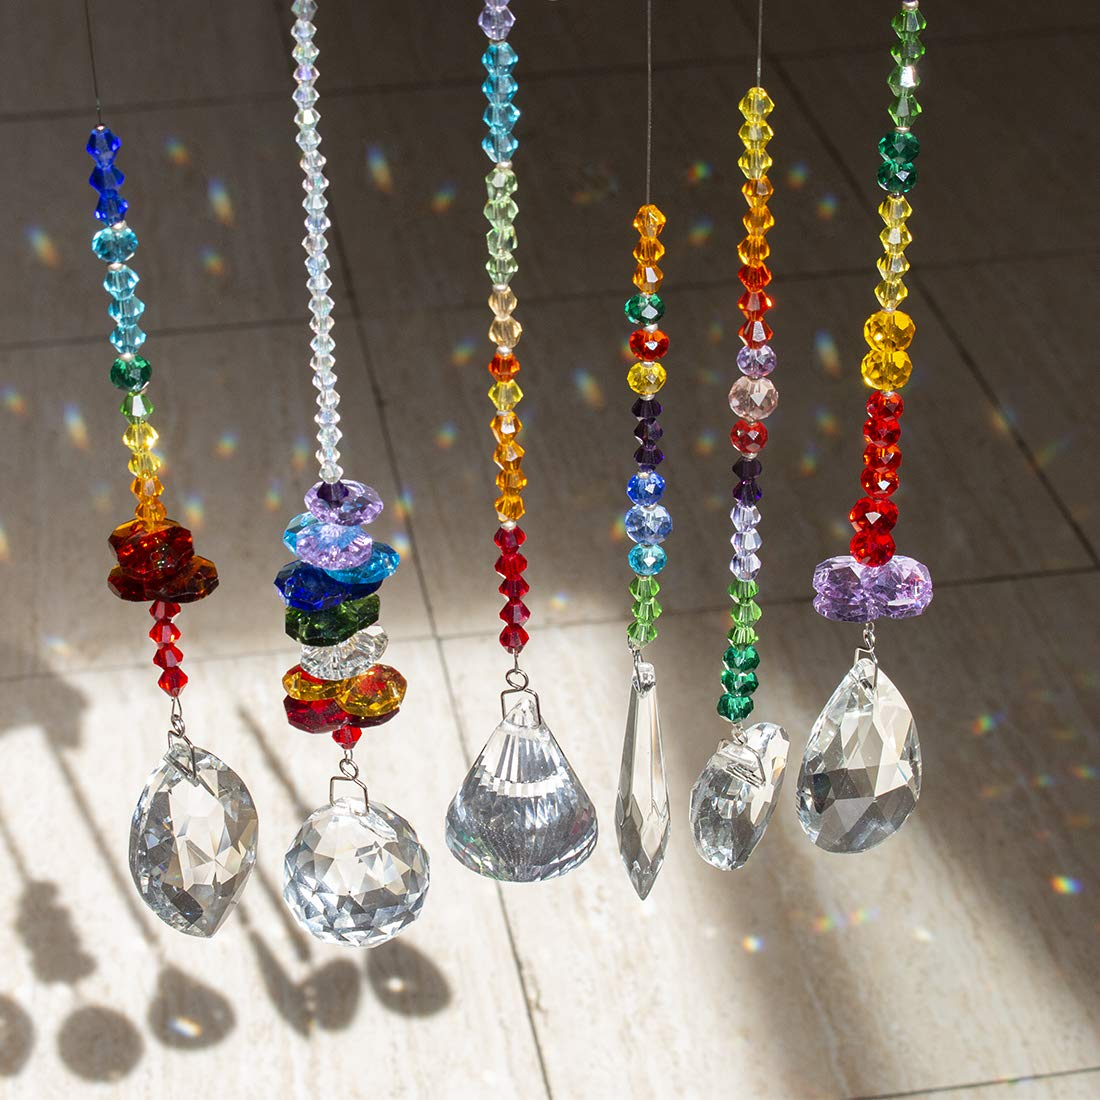 H/&D Colorful Crystals Glass Pendants Chandelier Suncatchers Prisms Hanging Ornament Octogon Chakra Crystal Pendants for Home,Office,Garden Decoration,Pack of 6